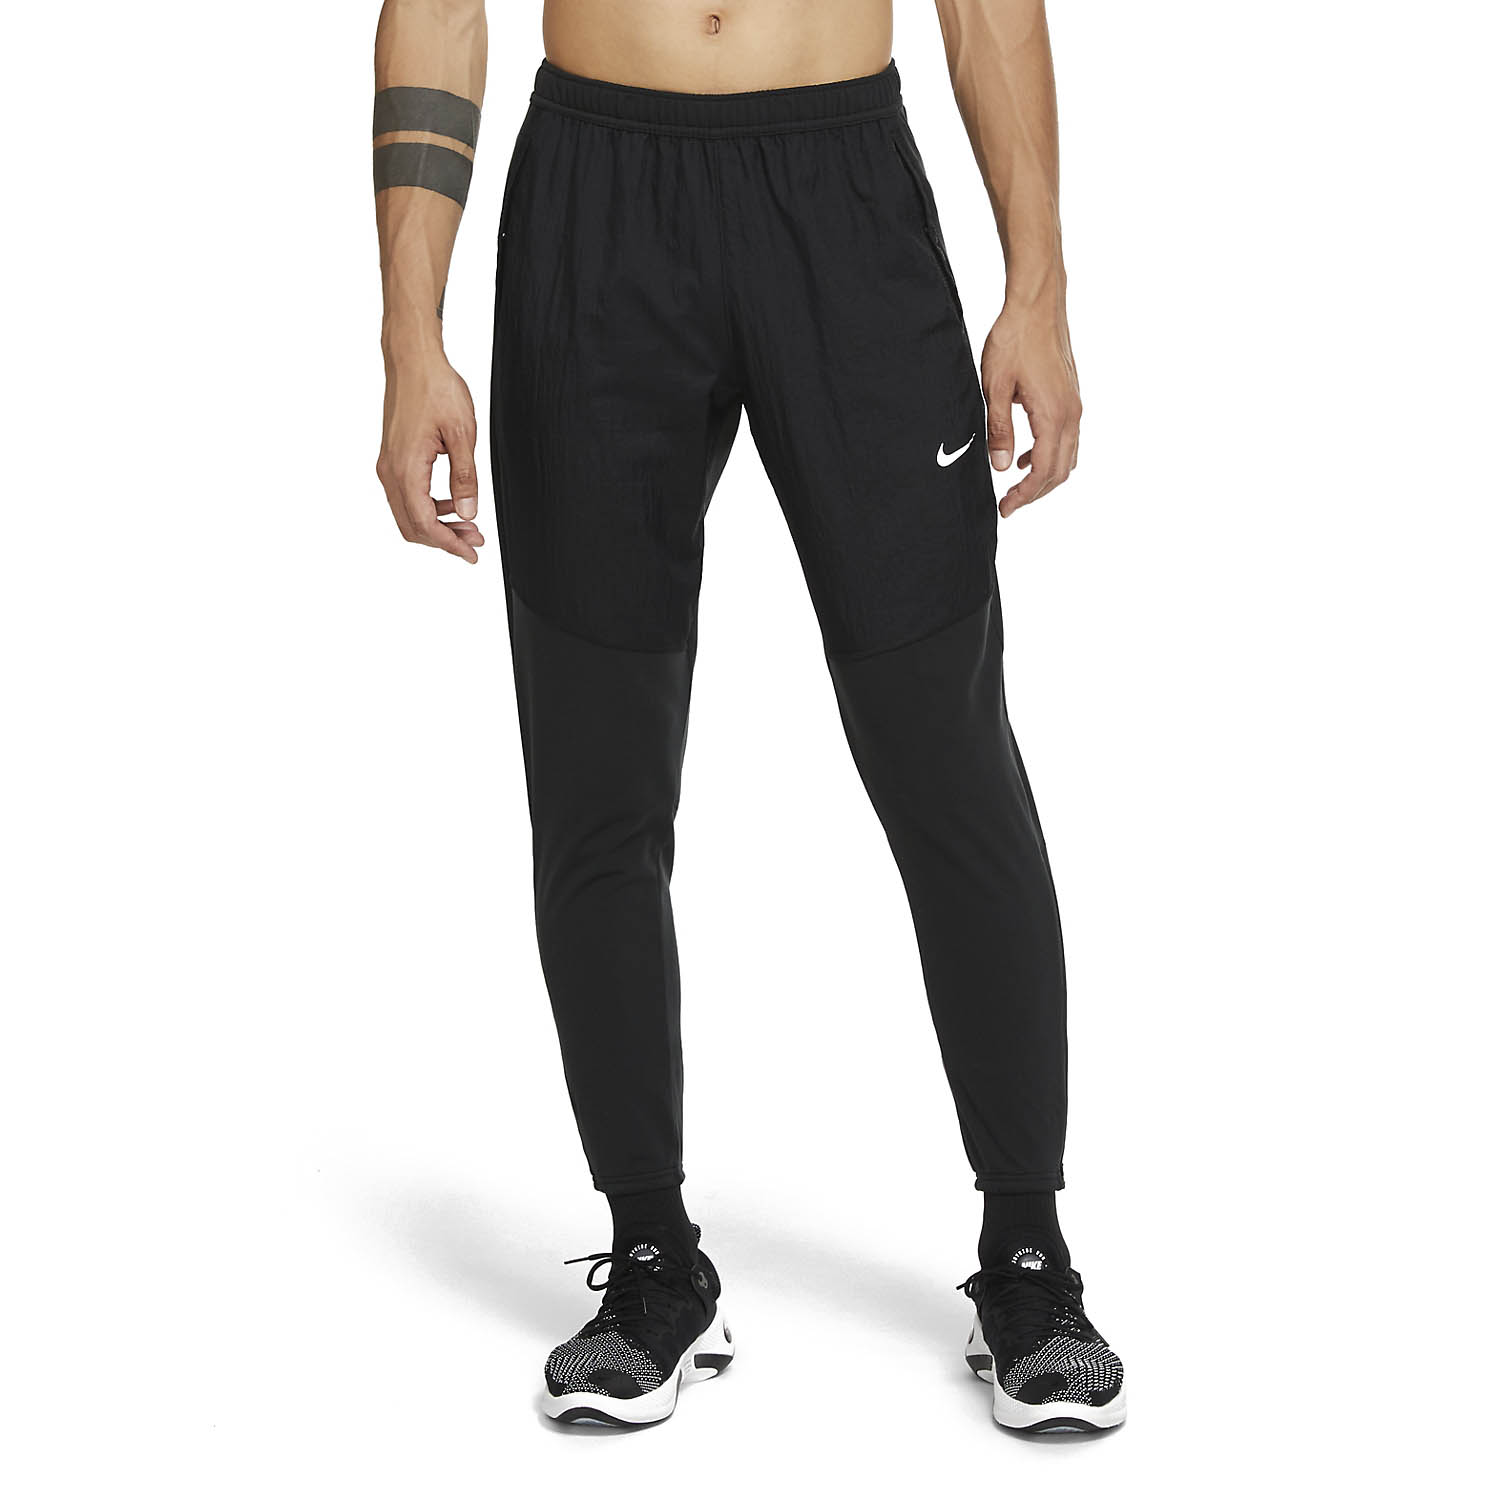 Nike Essential Therma Pants - Black/Reflective Silver